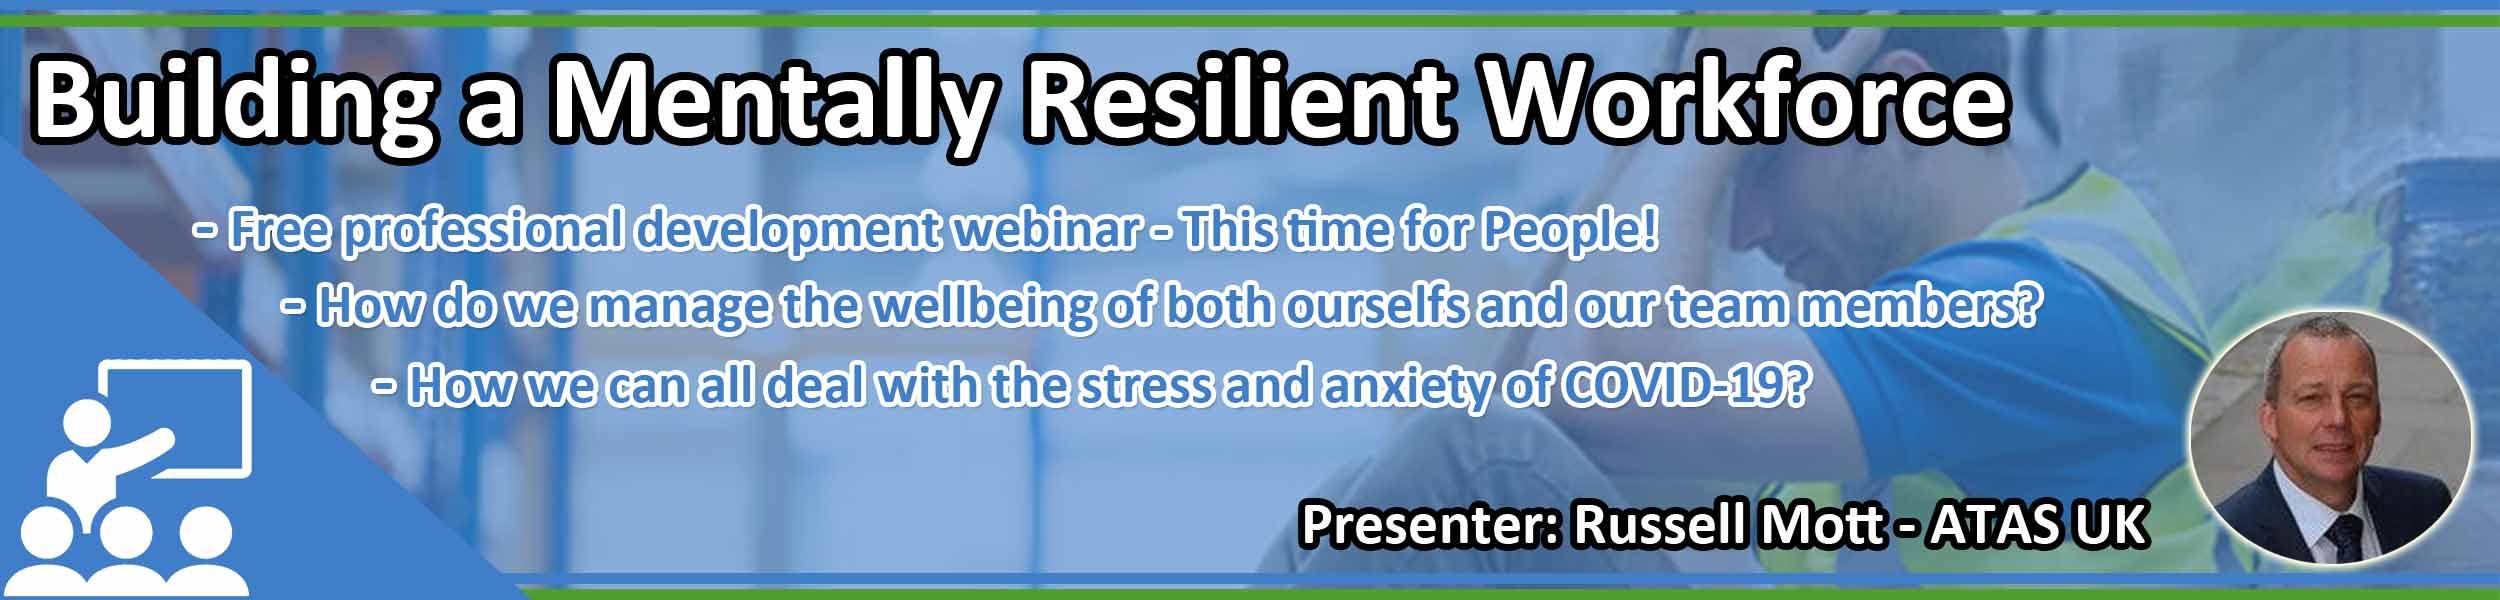 Webinar: Building a Mentally Resilient Workforce